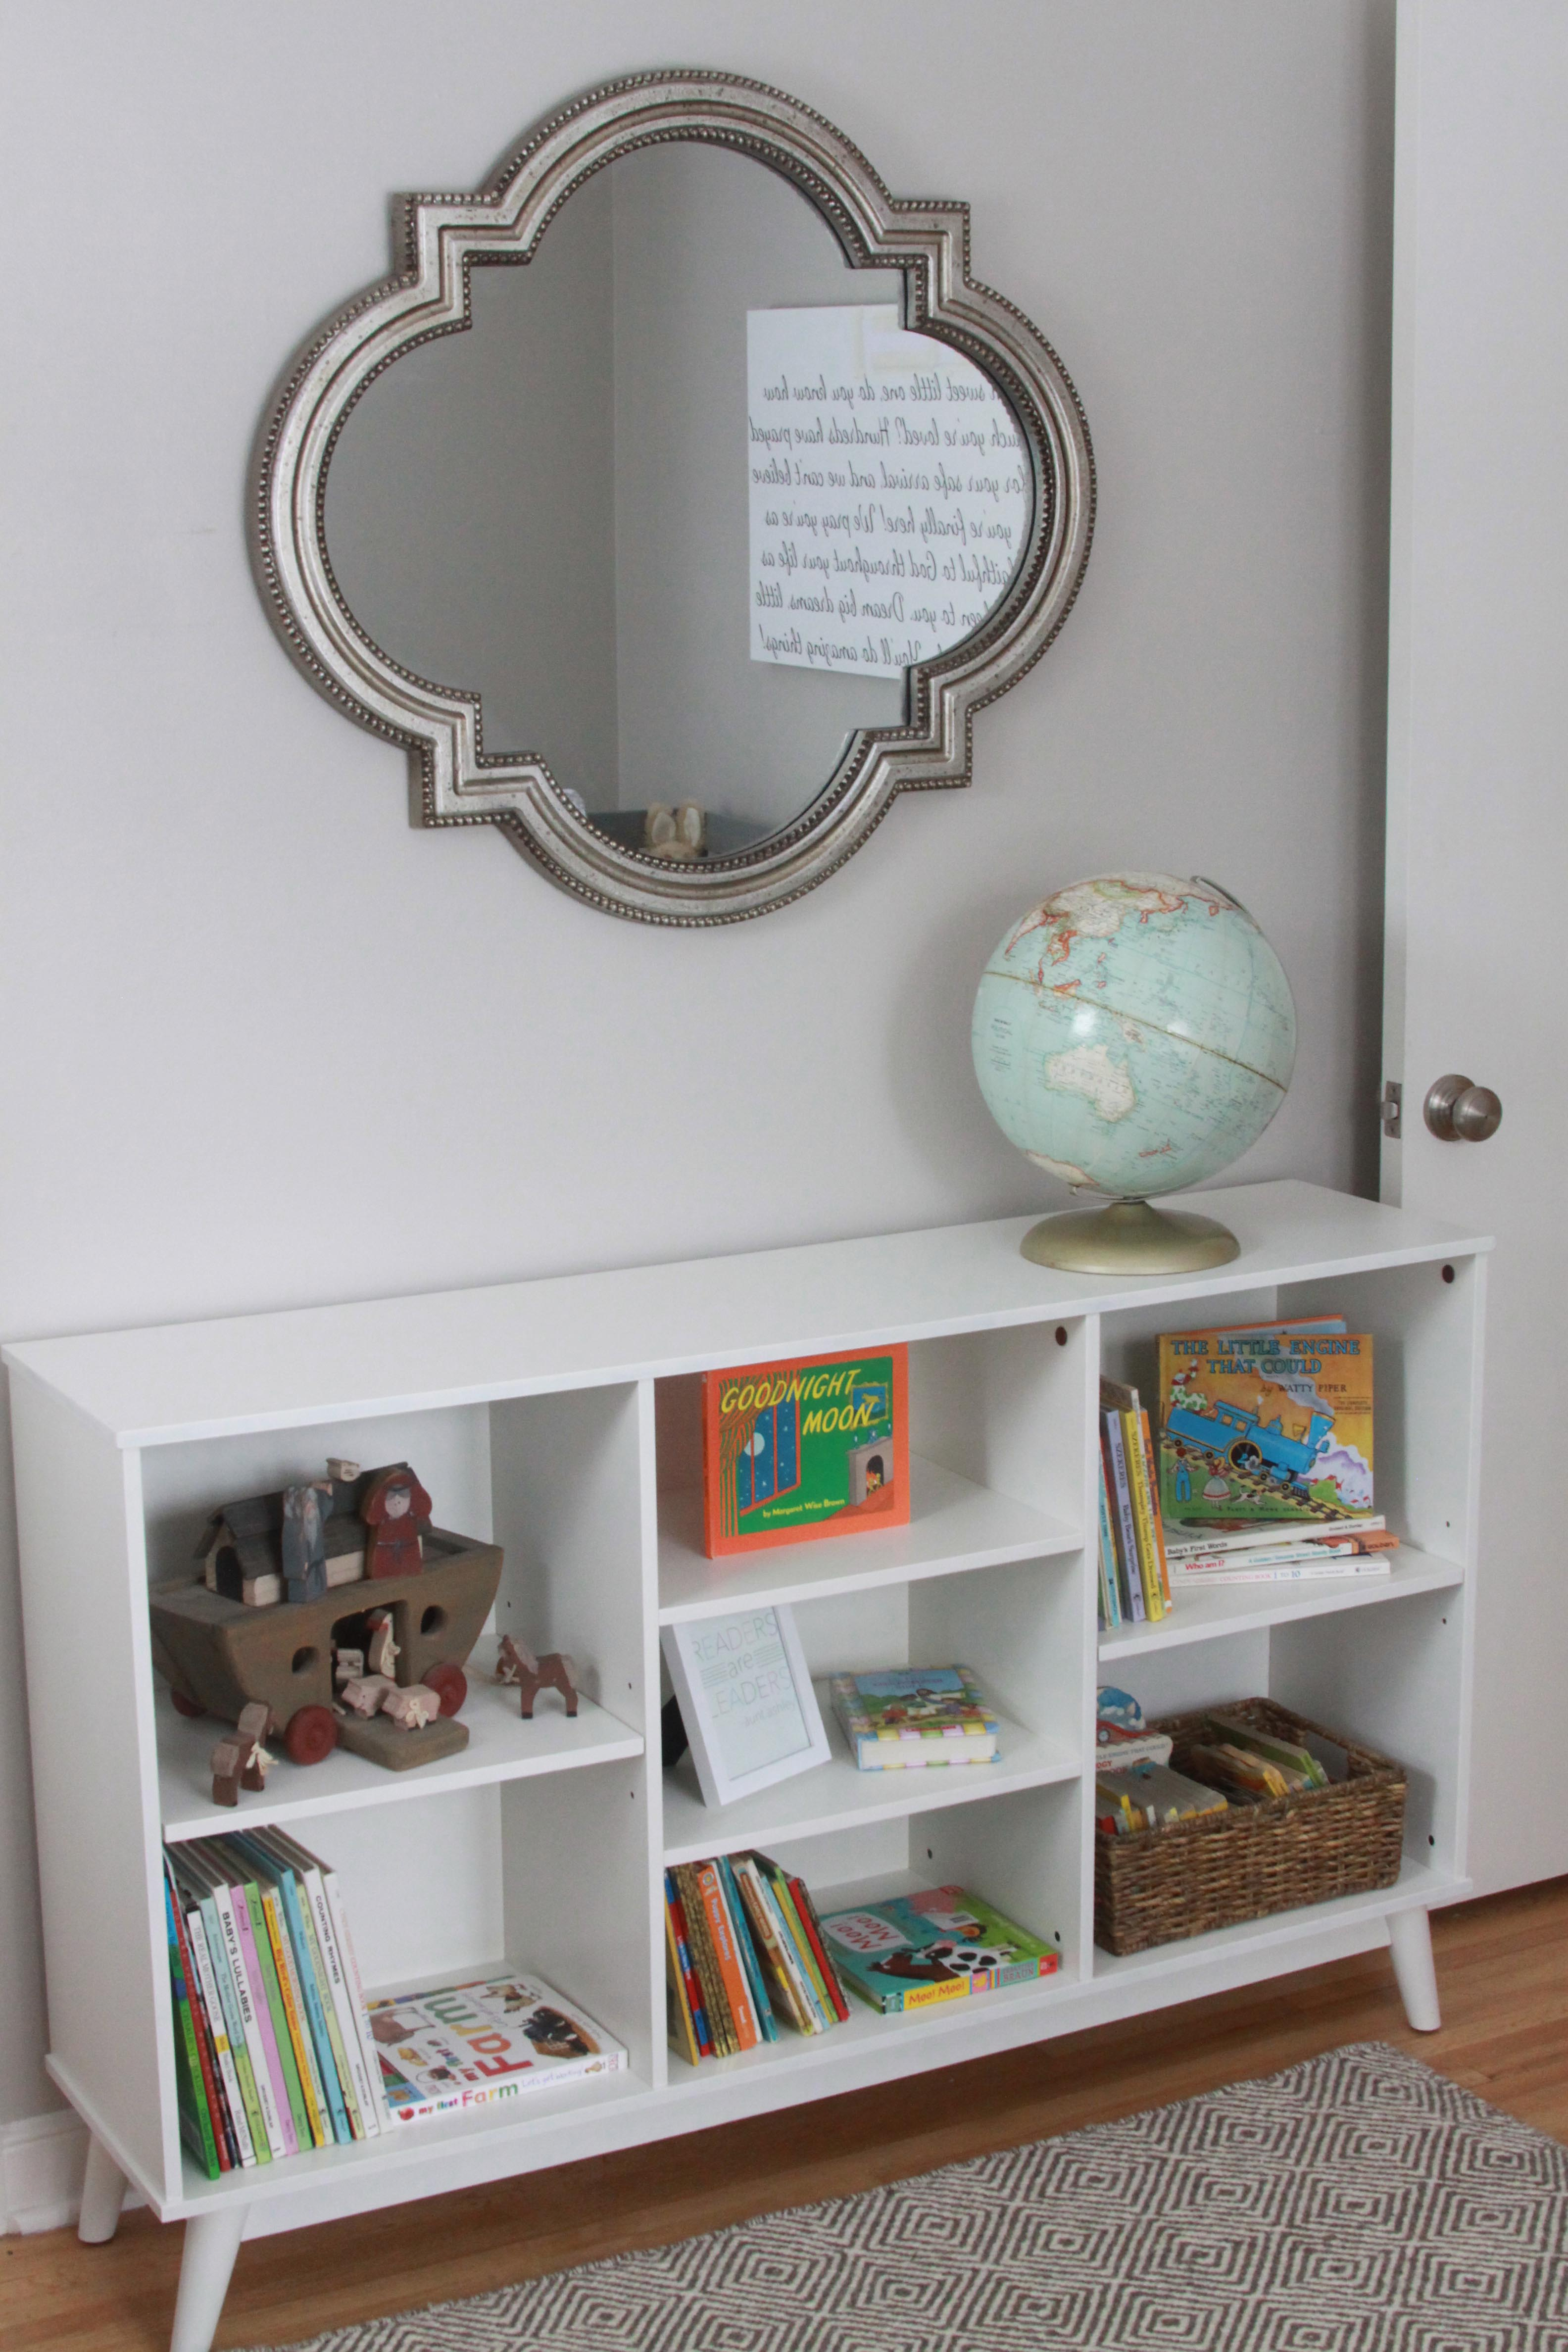 cubby organizer storage best rakuten w bookcase choice baby kids multi product purpose products shop bedroom bestchoiceproducts